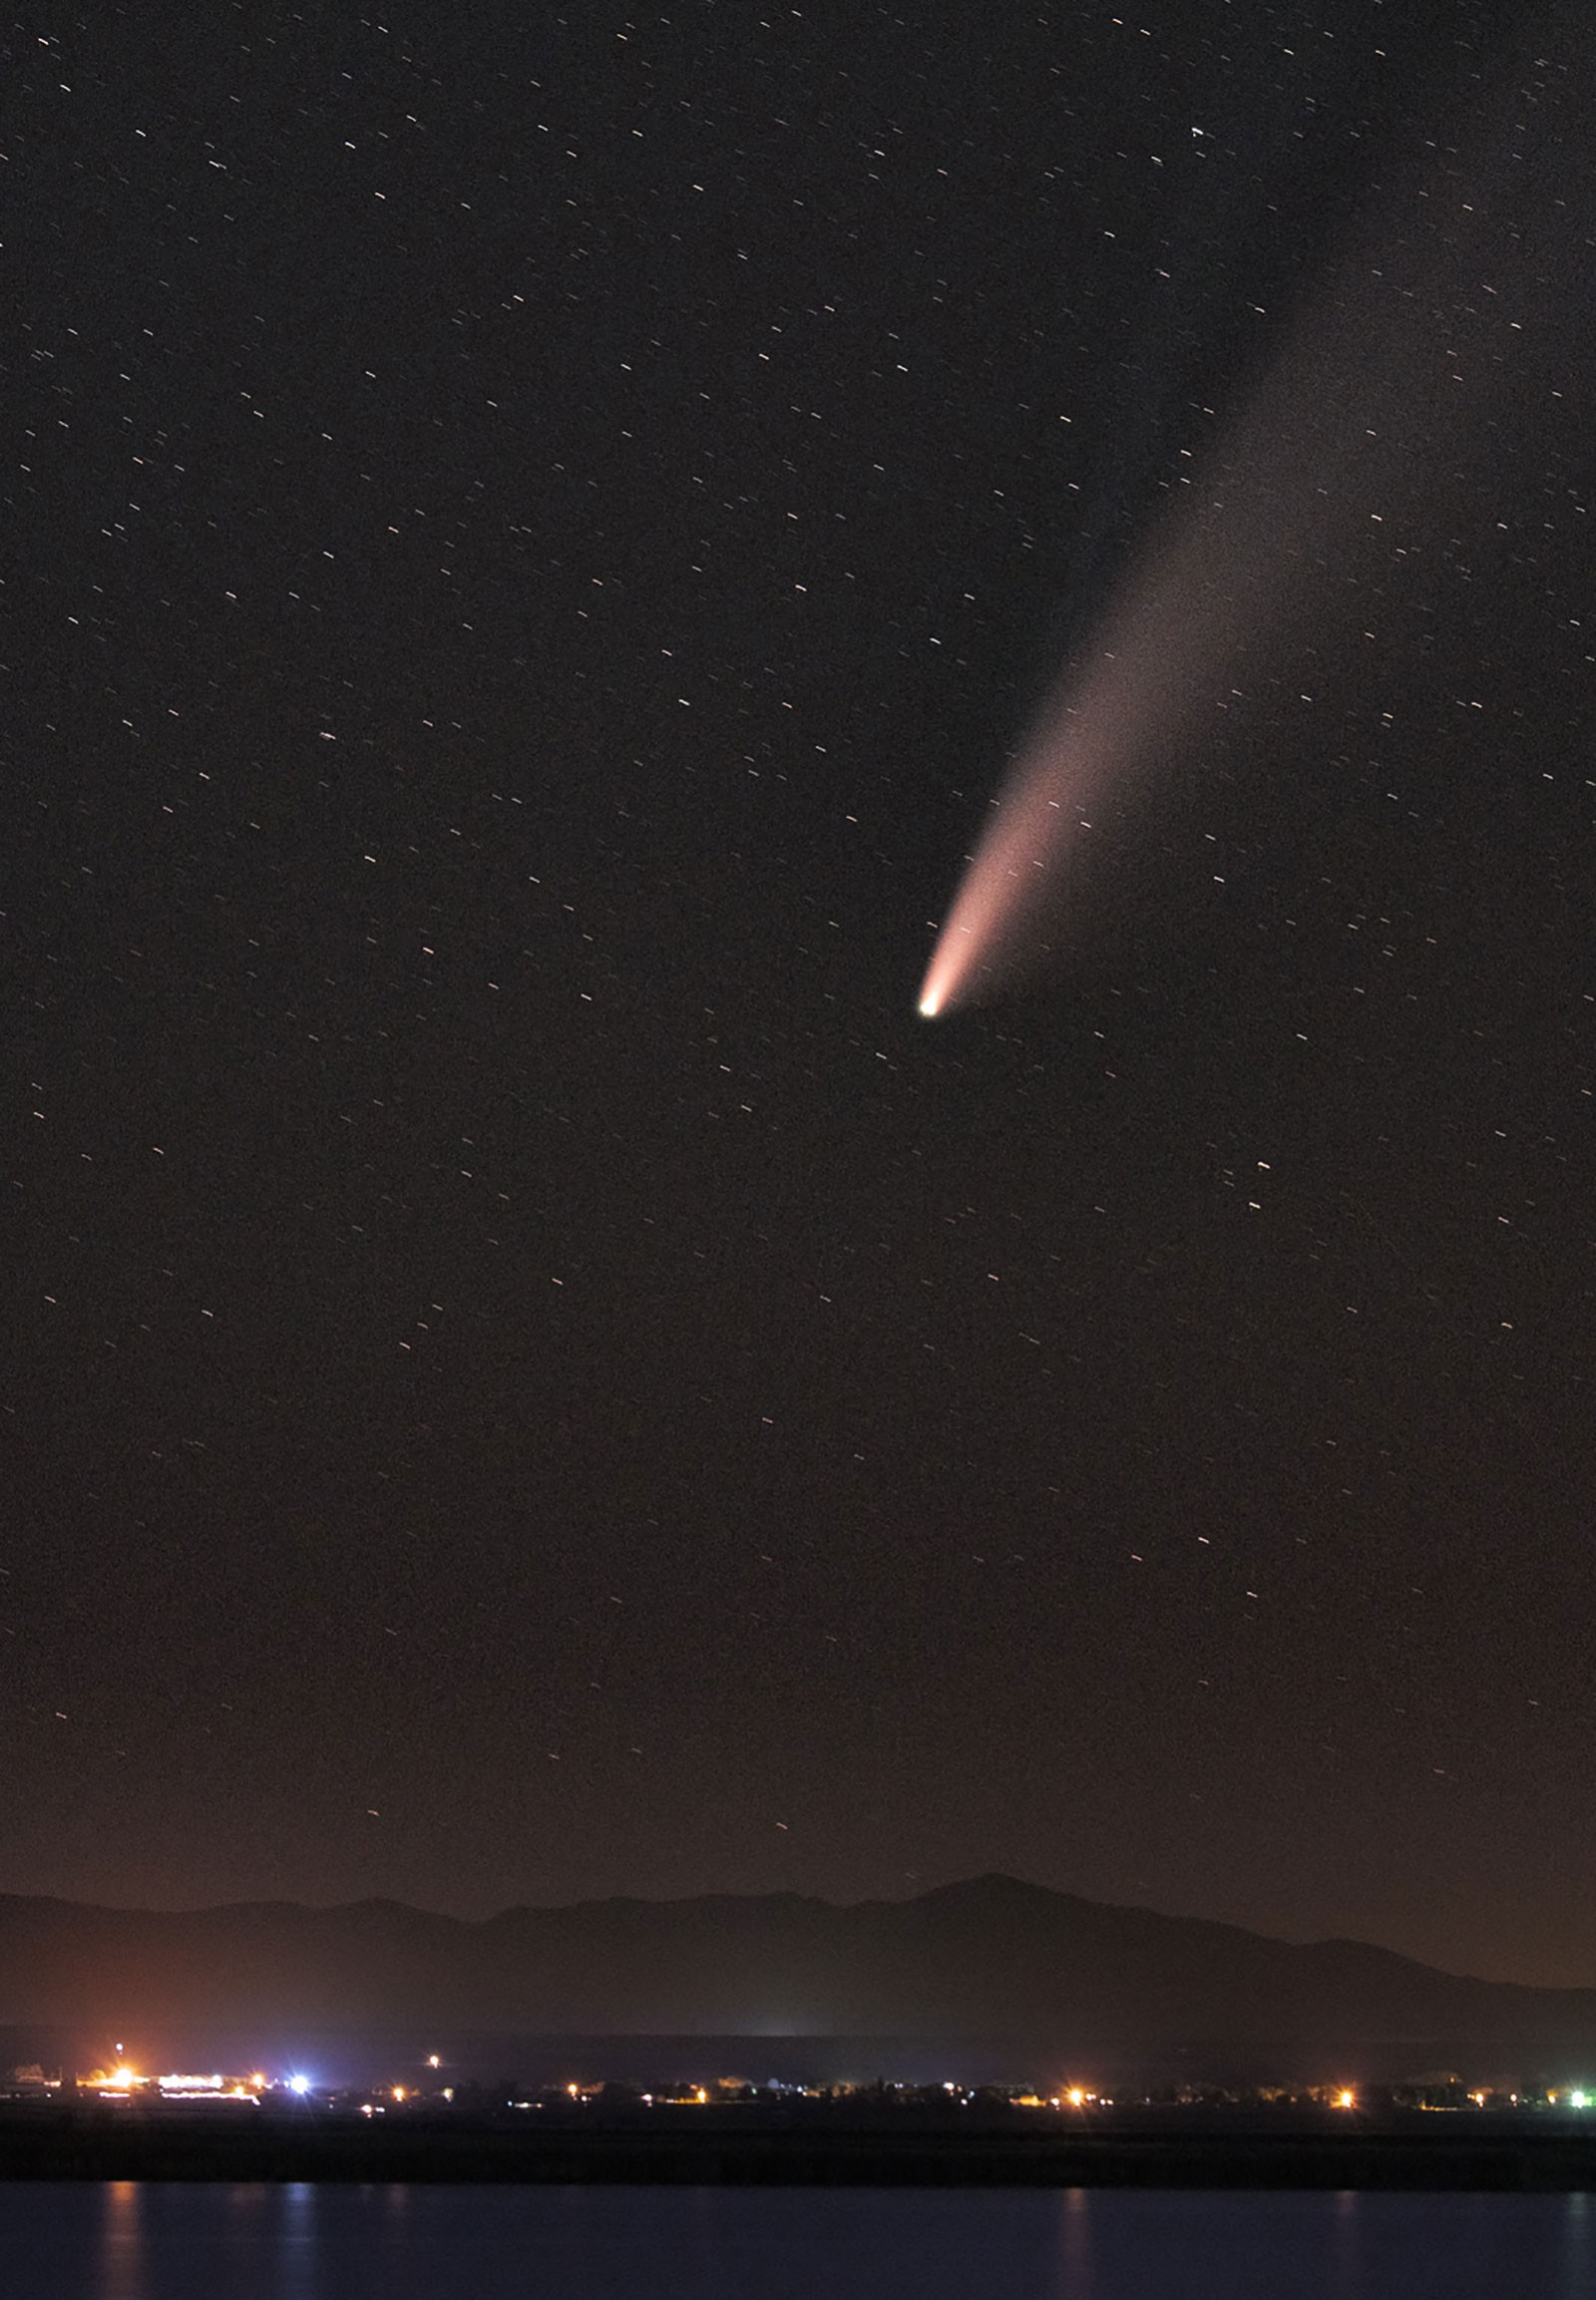 zoomed in NEOWISE comet.